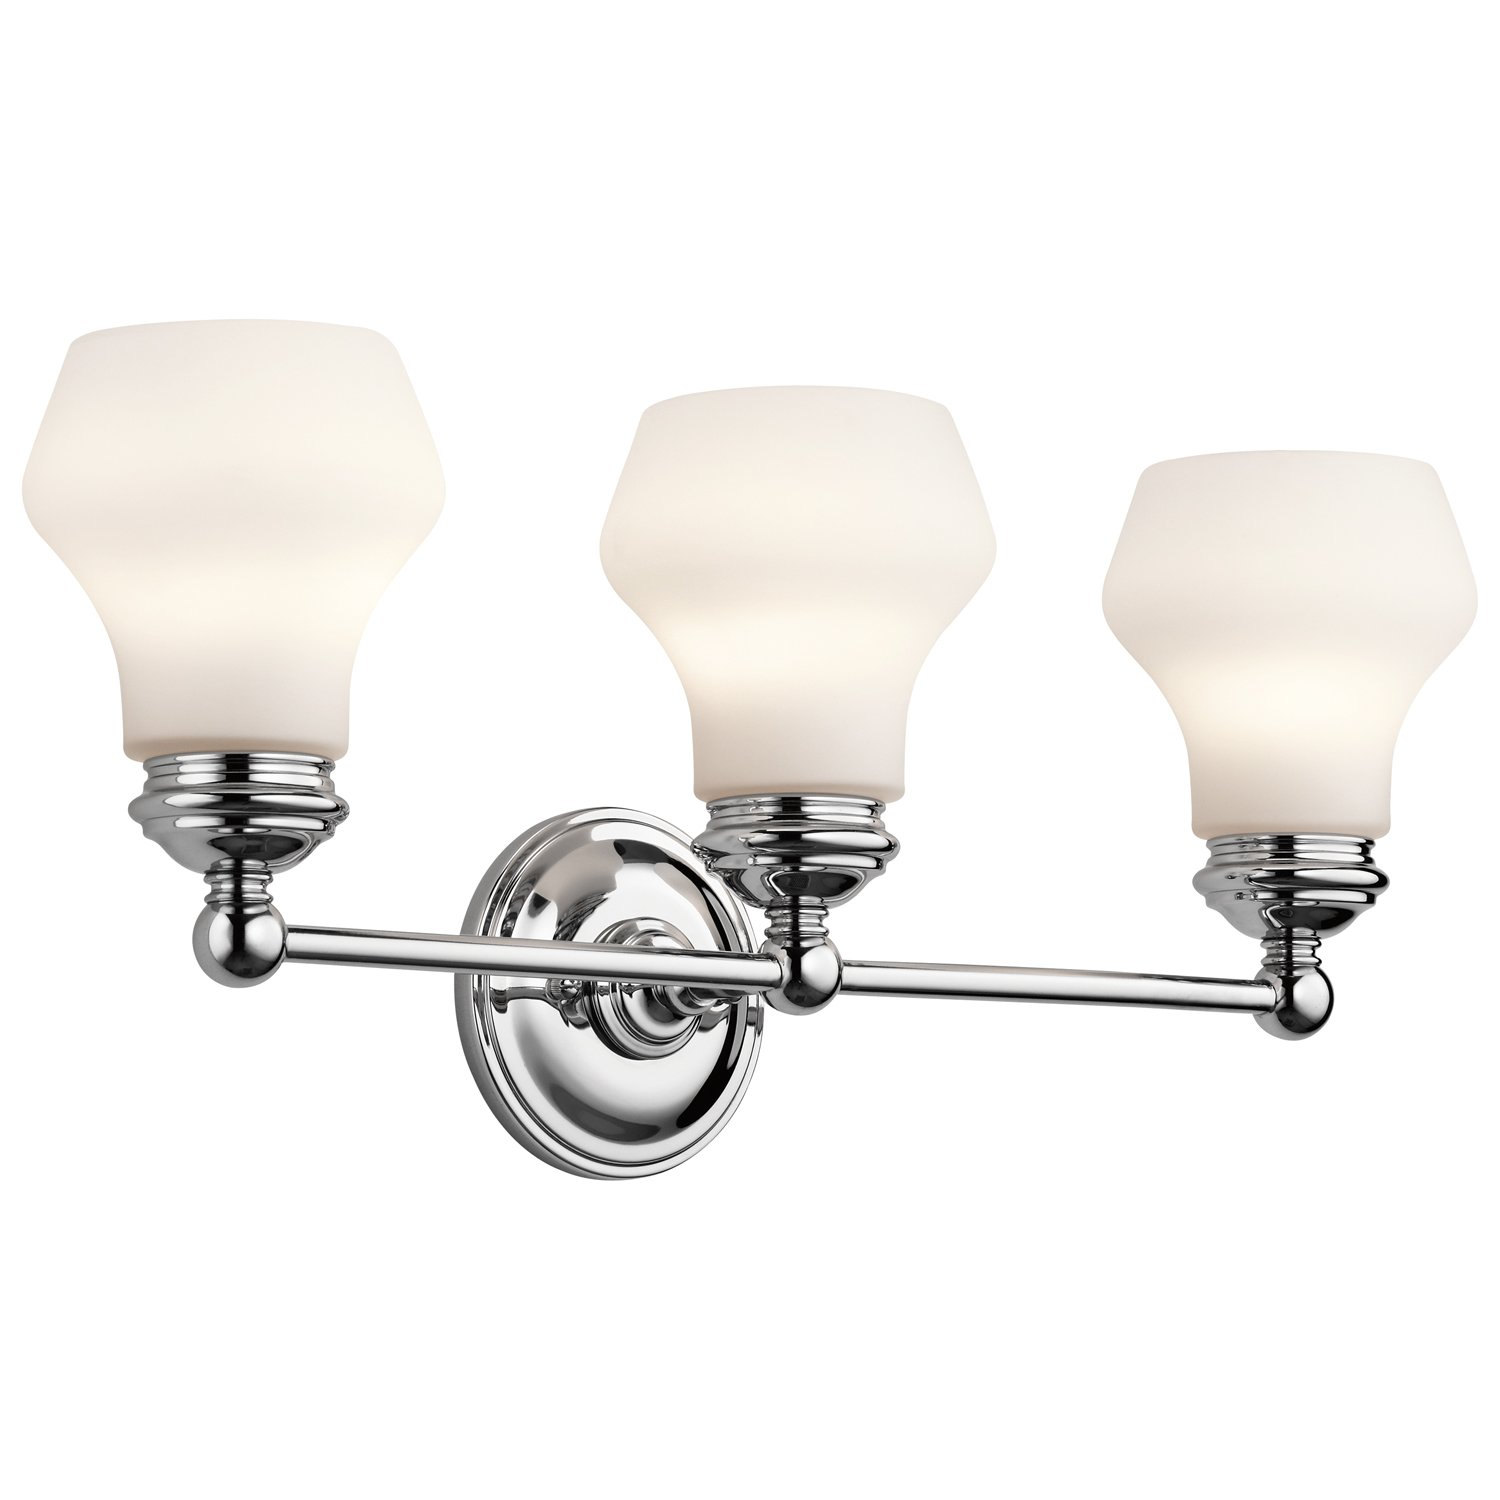 Kichler 45488CH Three Light Bath by Kichler Lighting